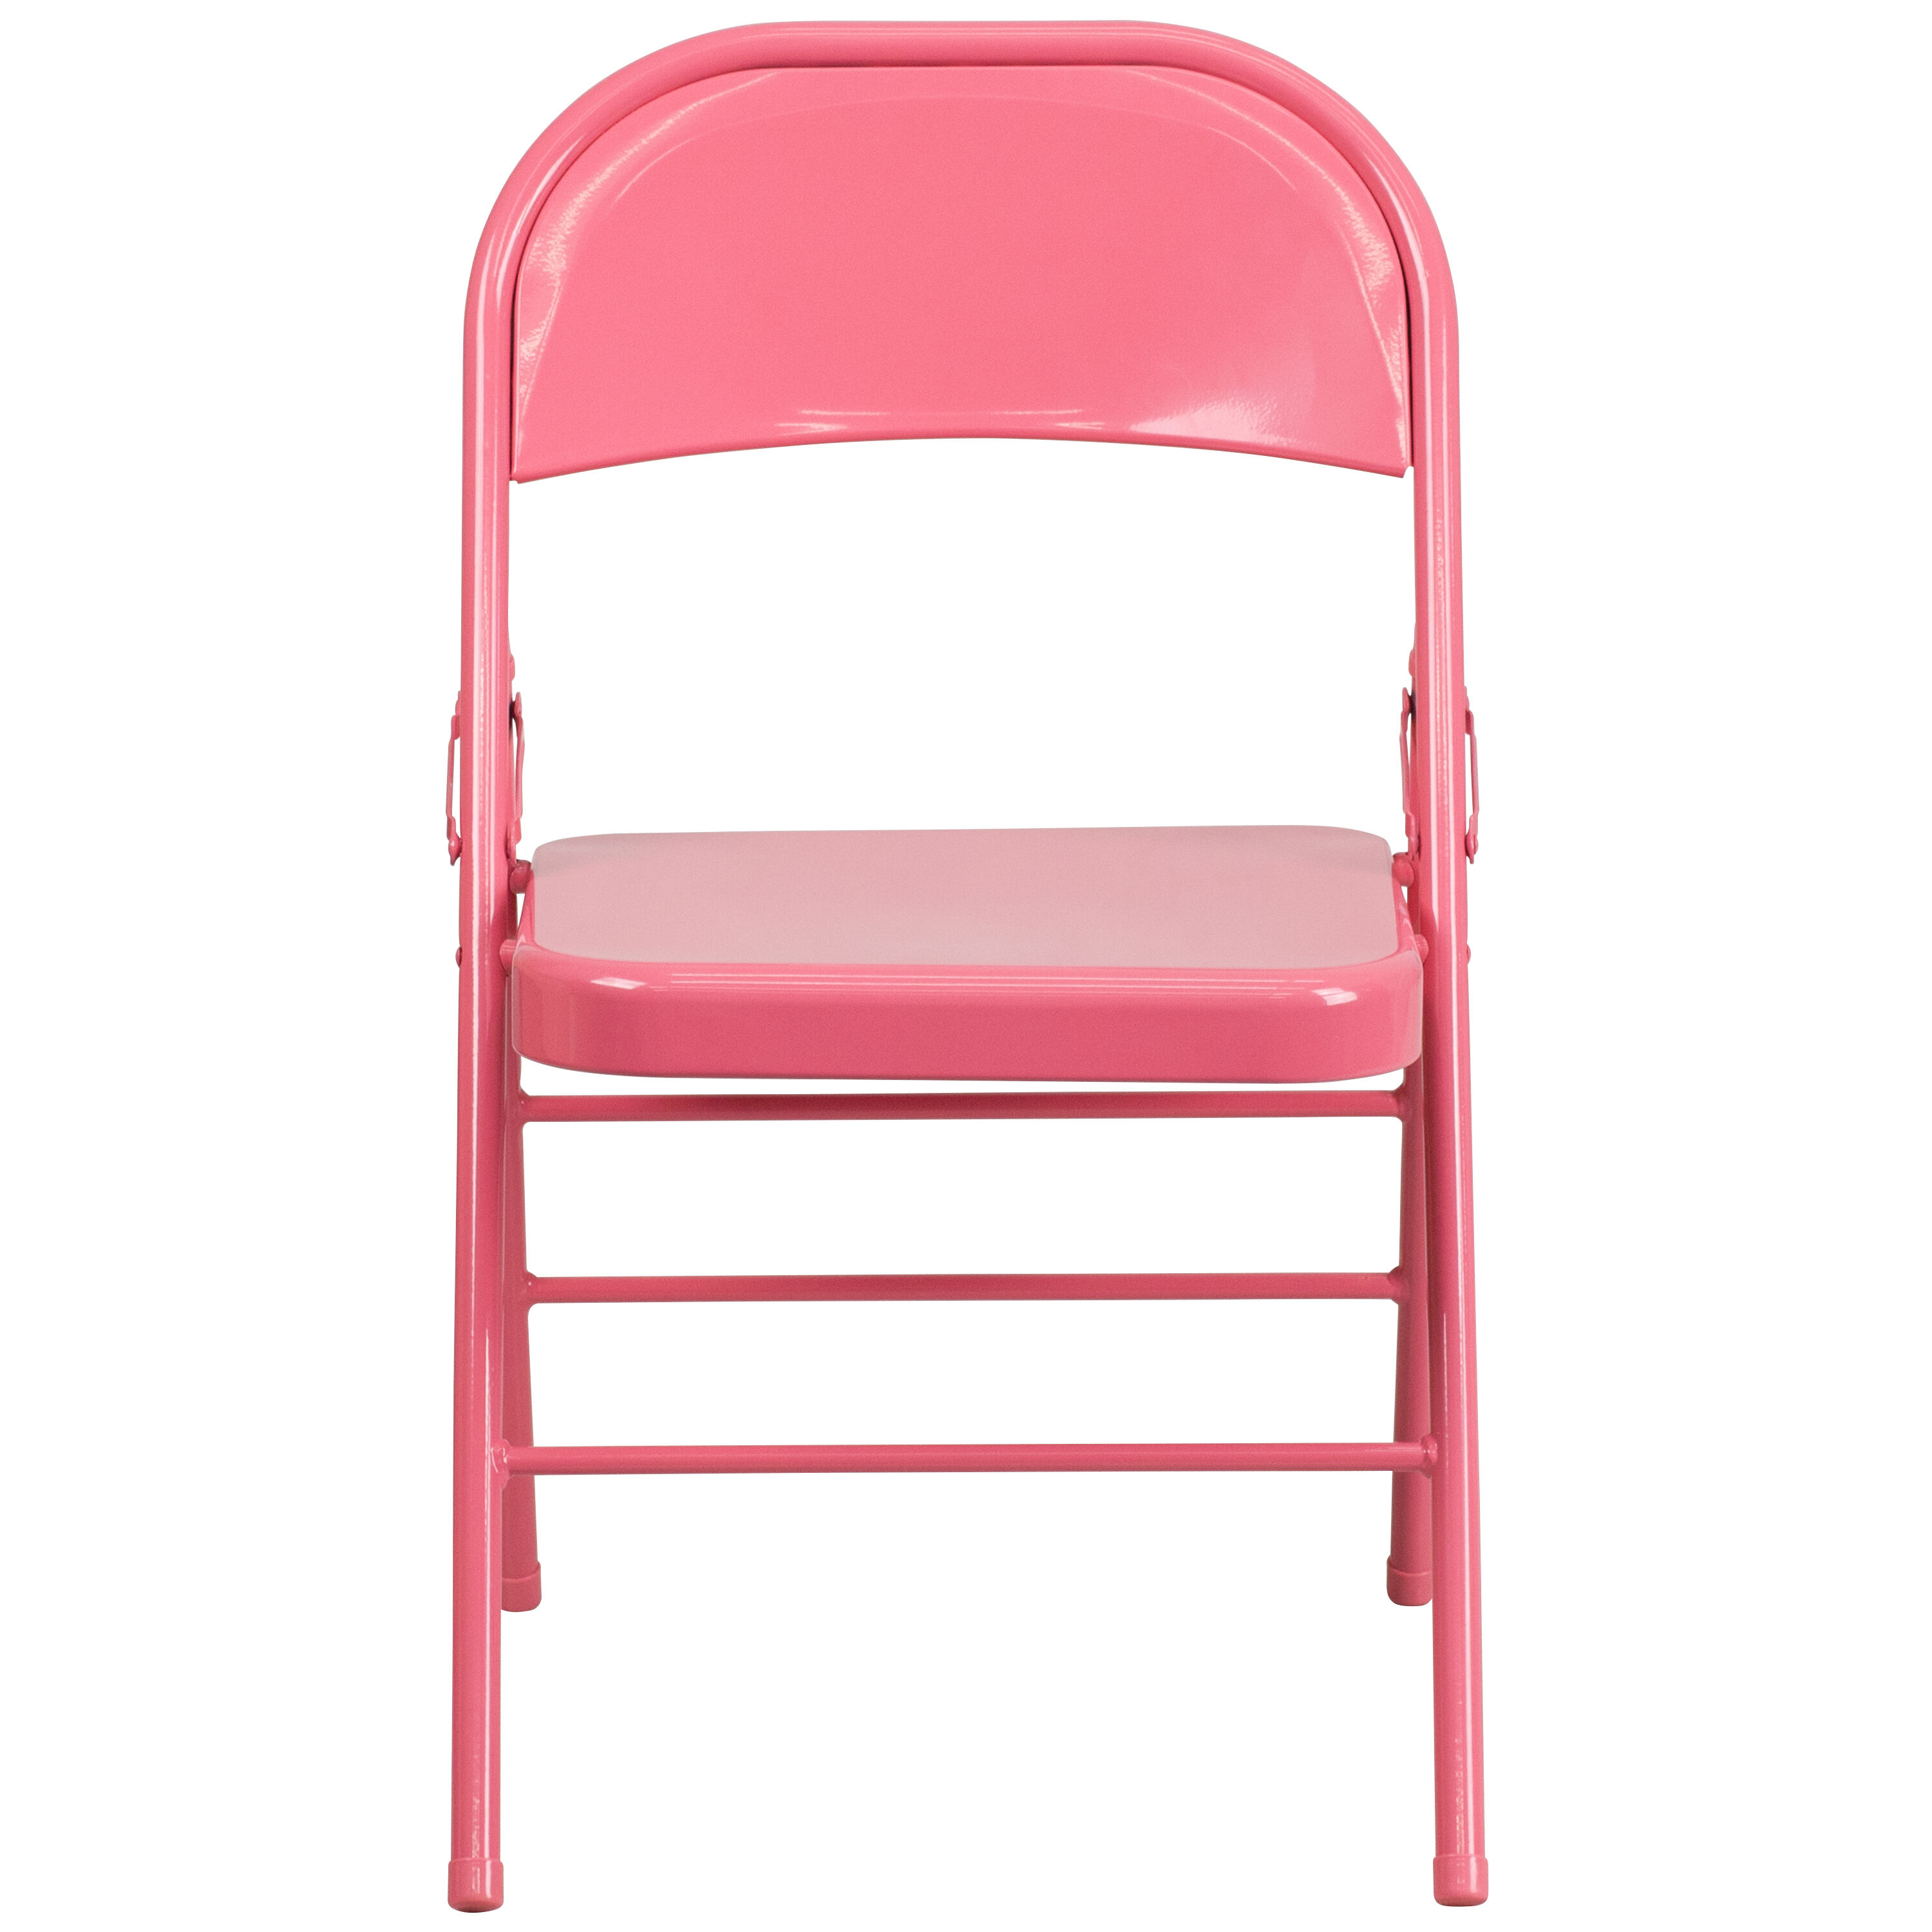 pink folding chair restaurants tables and chairs used for sale bubblegum hf3 gg bizchair